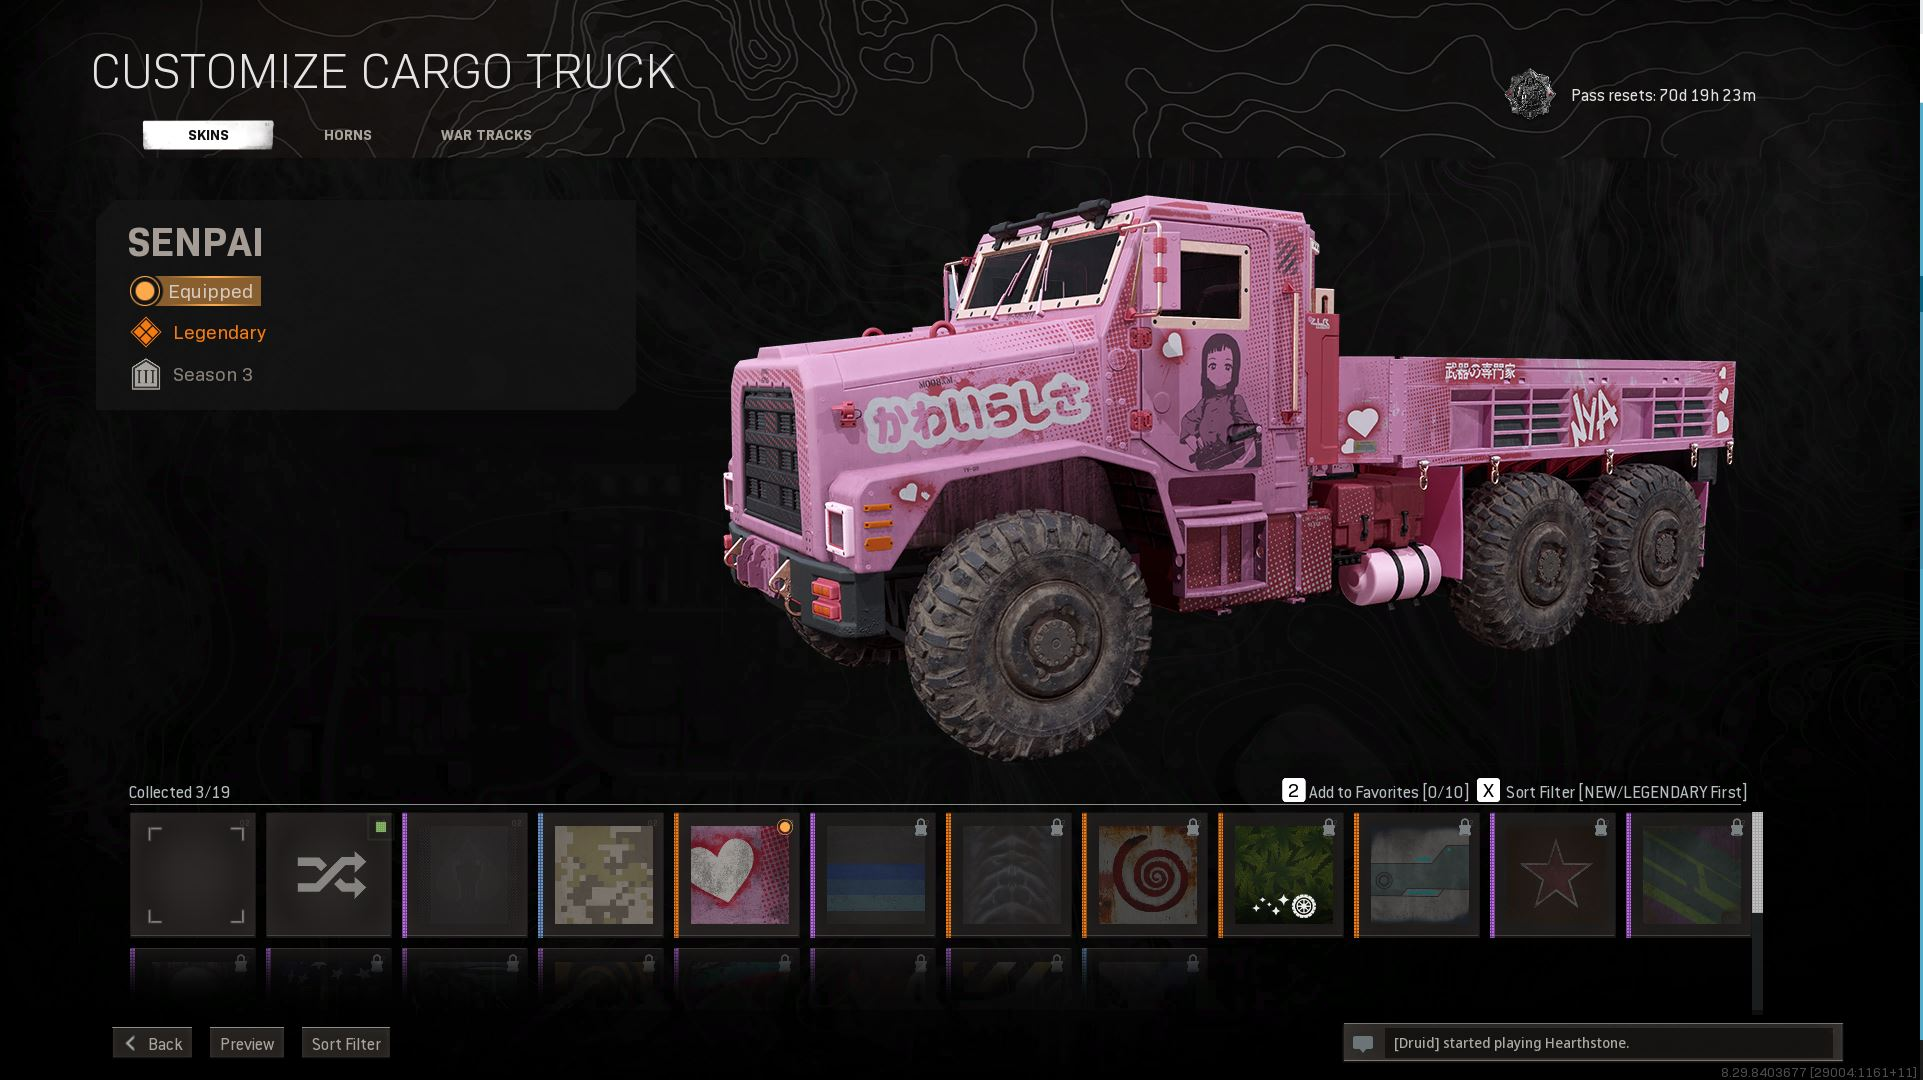 A Warzone truck with the 'Senpai' skin can be customised to add all kinds of songs and war tracks.